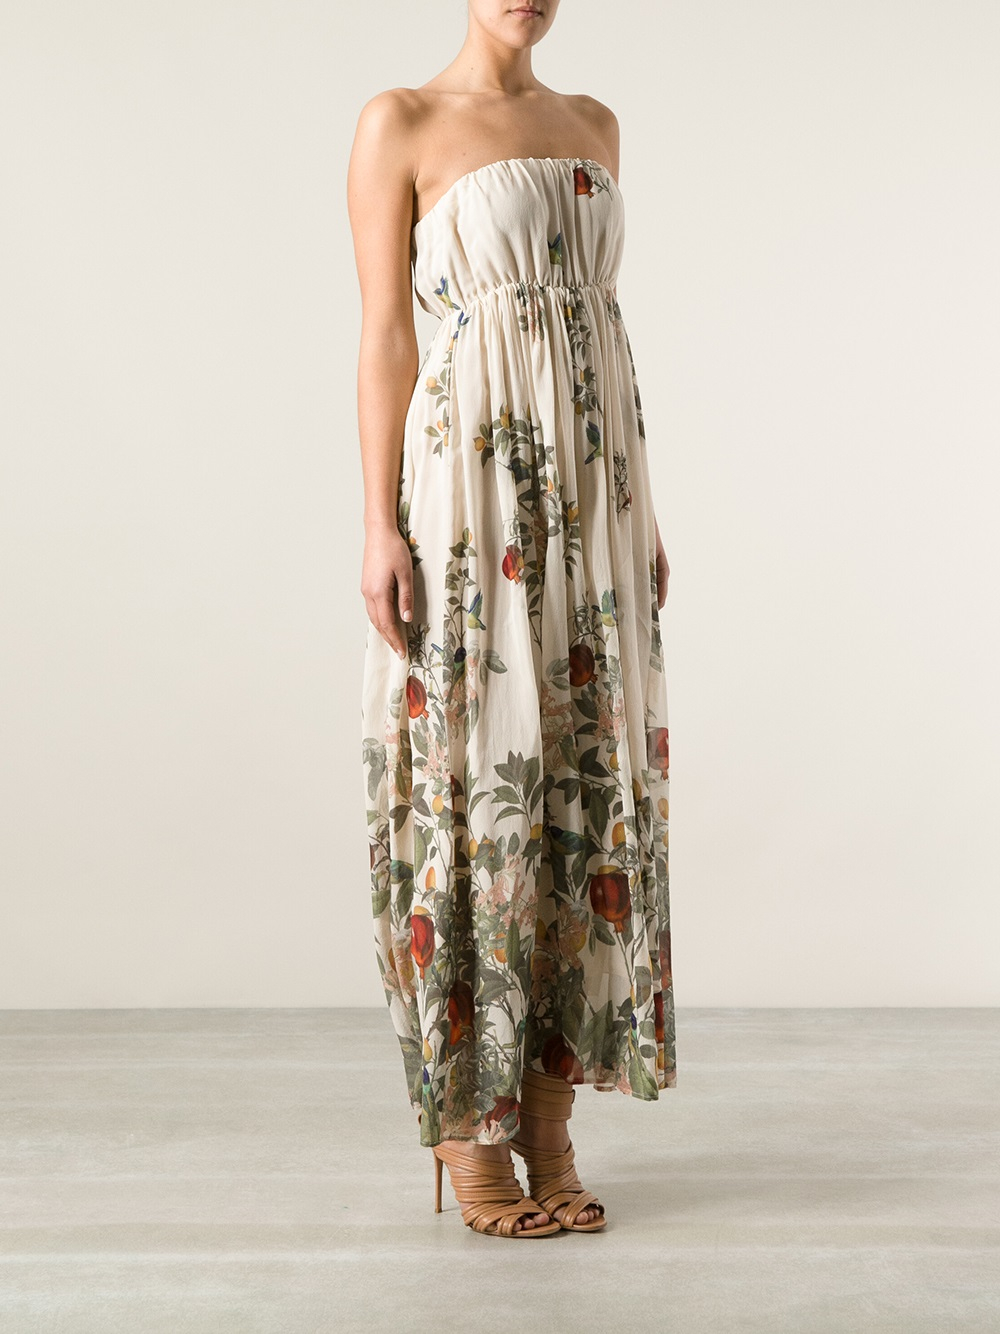 Lyst Erika Cavallini Semi Couture Floral Banded Dress